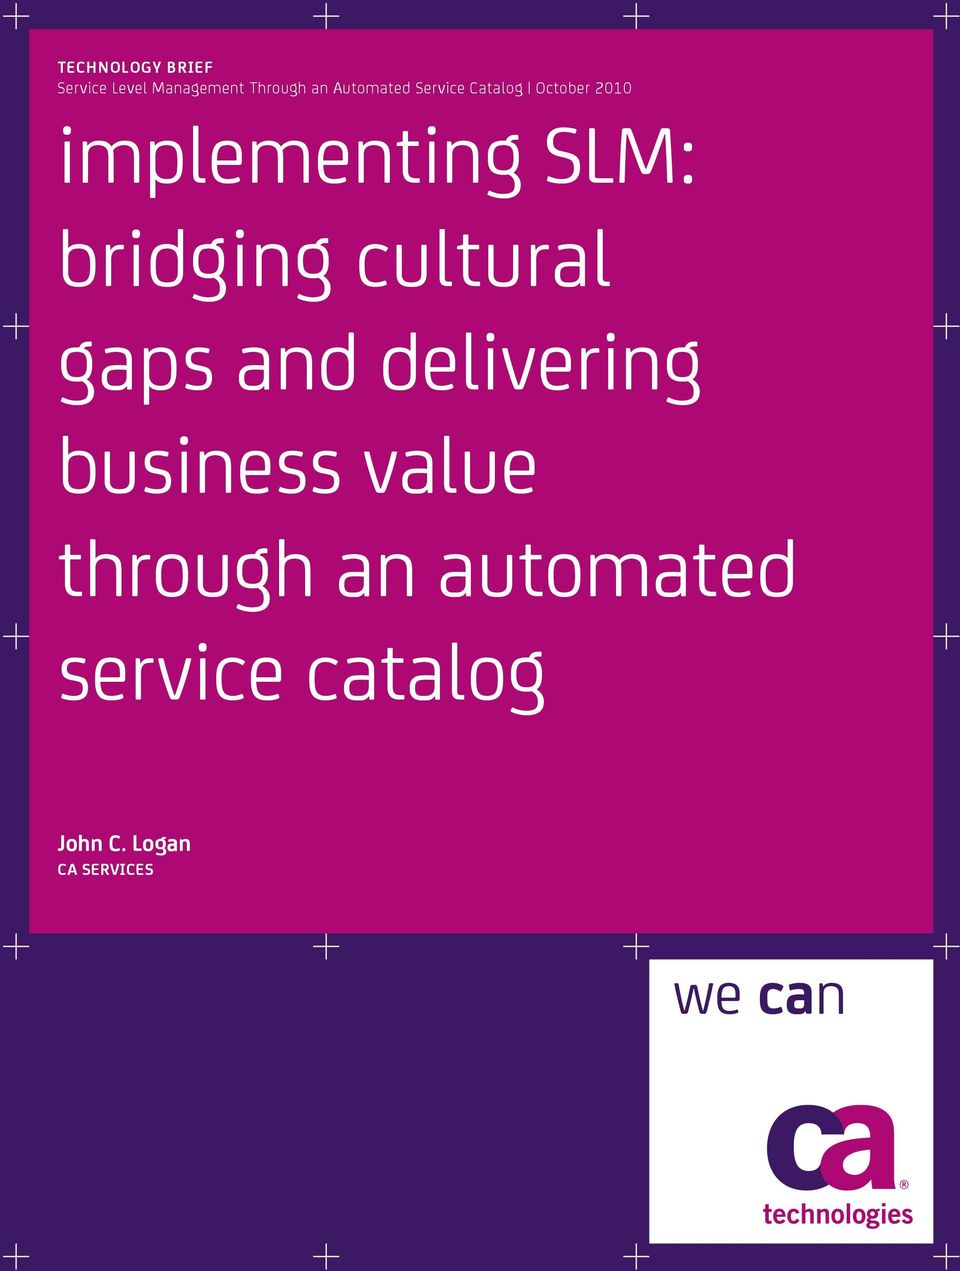 SLM: cloud bridging services cultural with gaps and Cisco delivering UCS and business CA value